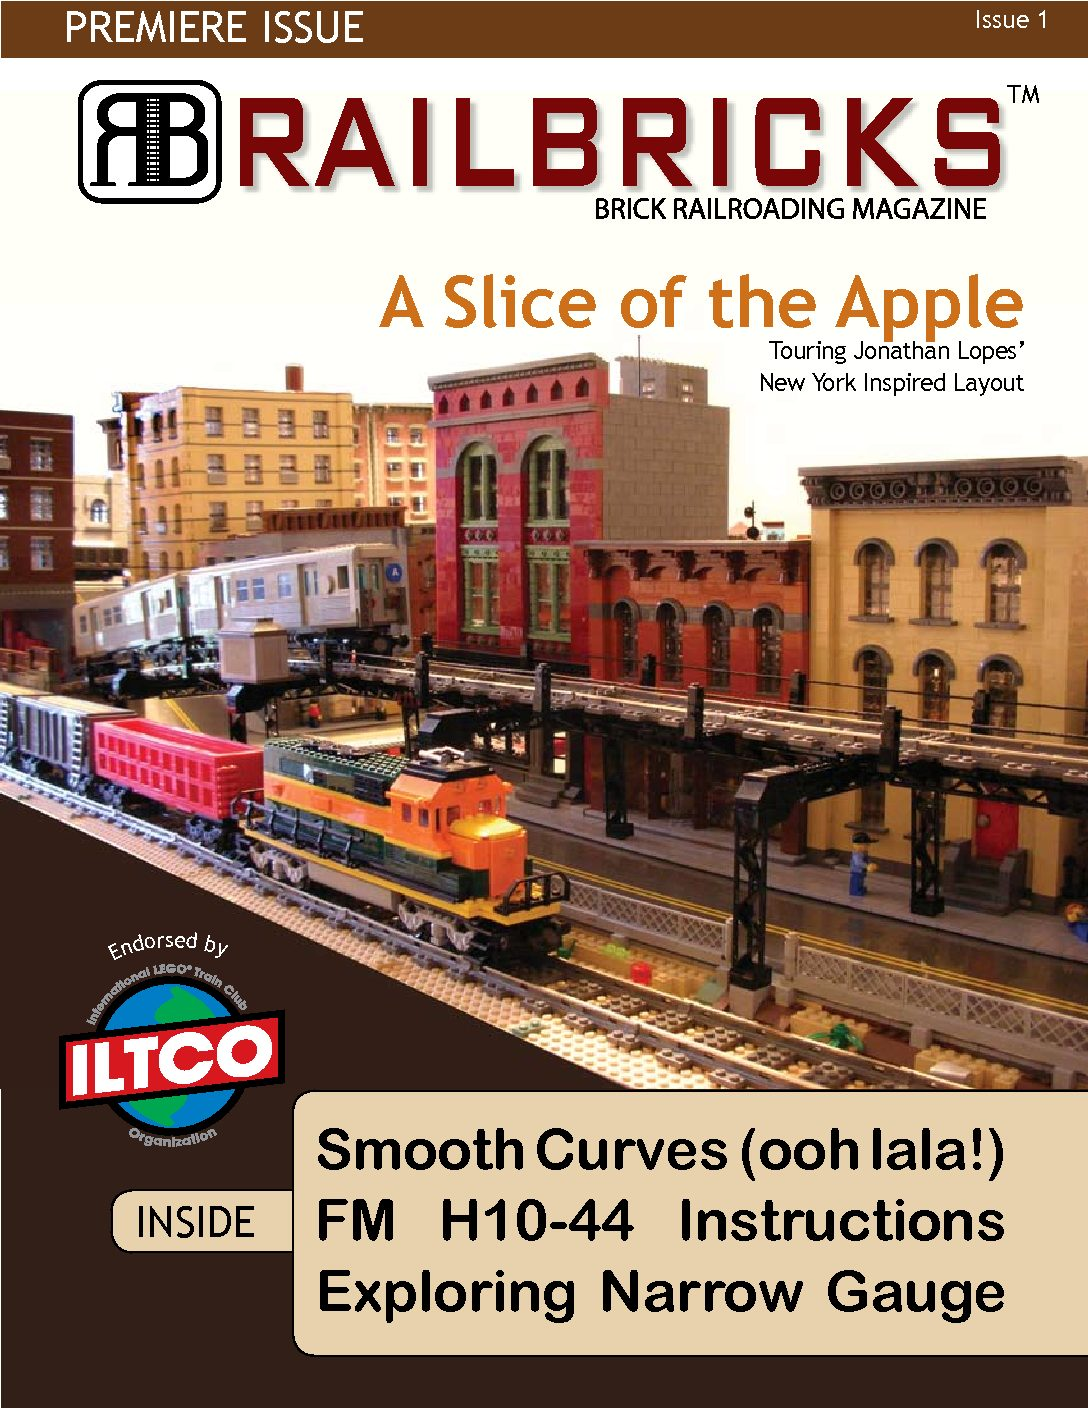 Building Techniques Brick Model Railroader Advice Desired On My Railroad Light Controller Circuit Railbricks Issue 1